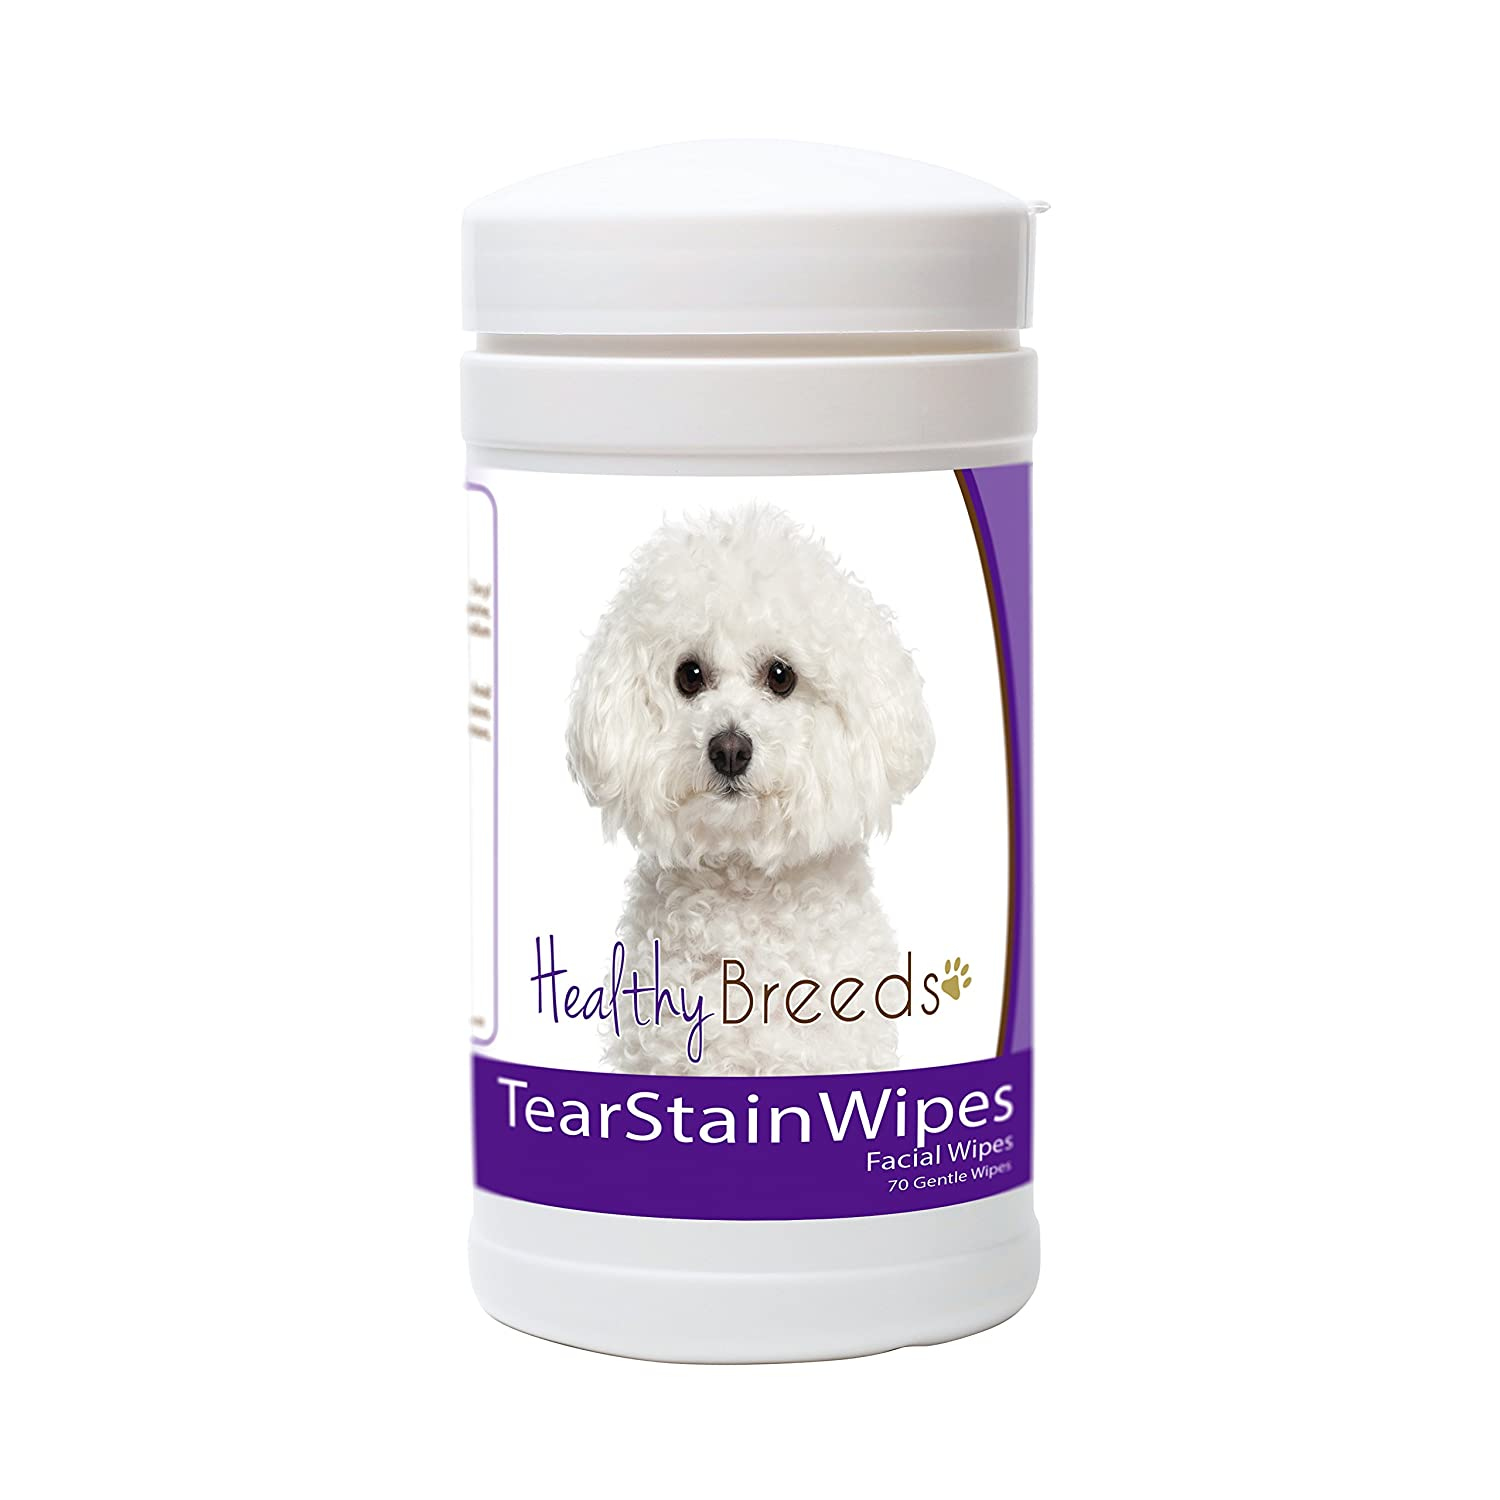 Healthy Breeds Dog Tear Stain Remover Wipes for Bichon Frise Over 200 Breeds Facial Eye Cleaner 70 Wipes Cleans Crust Stains Mucus Saliva Mild Gentle Fragrance Free